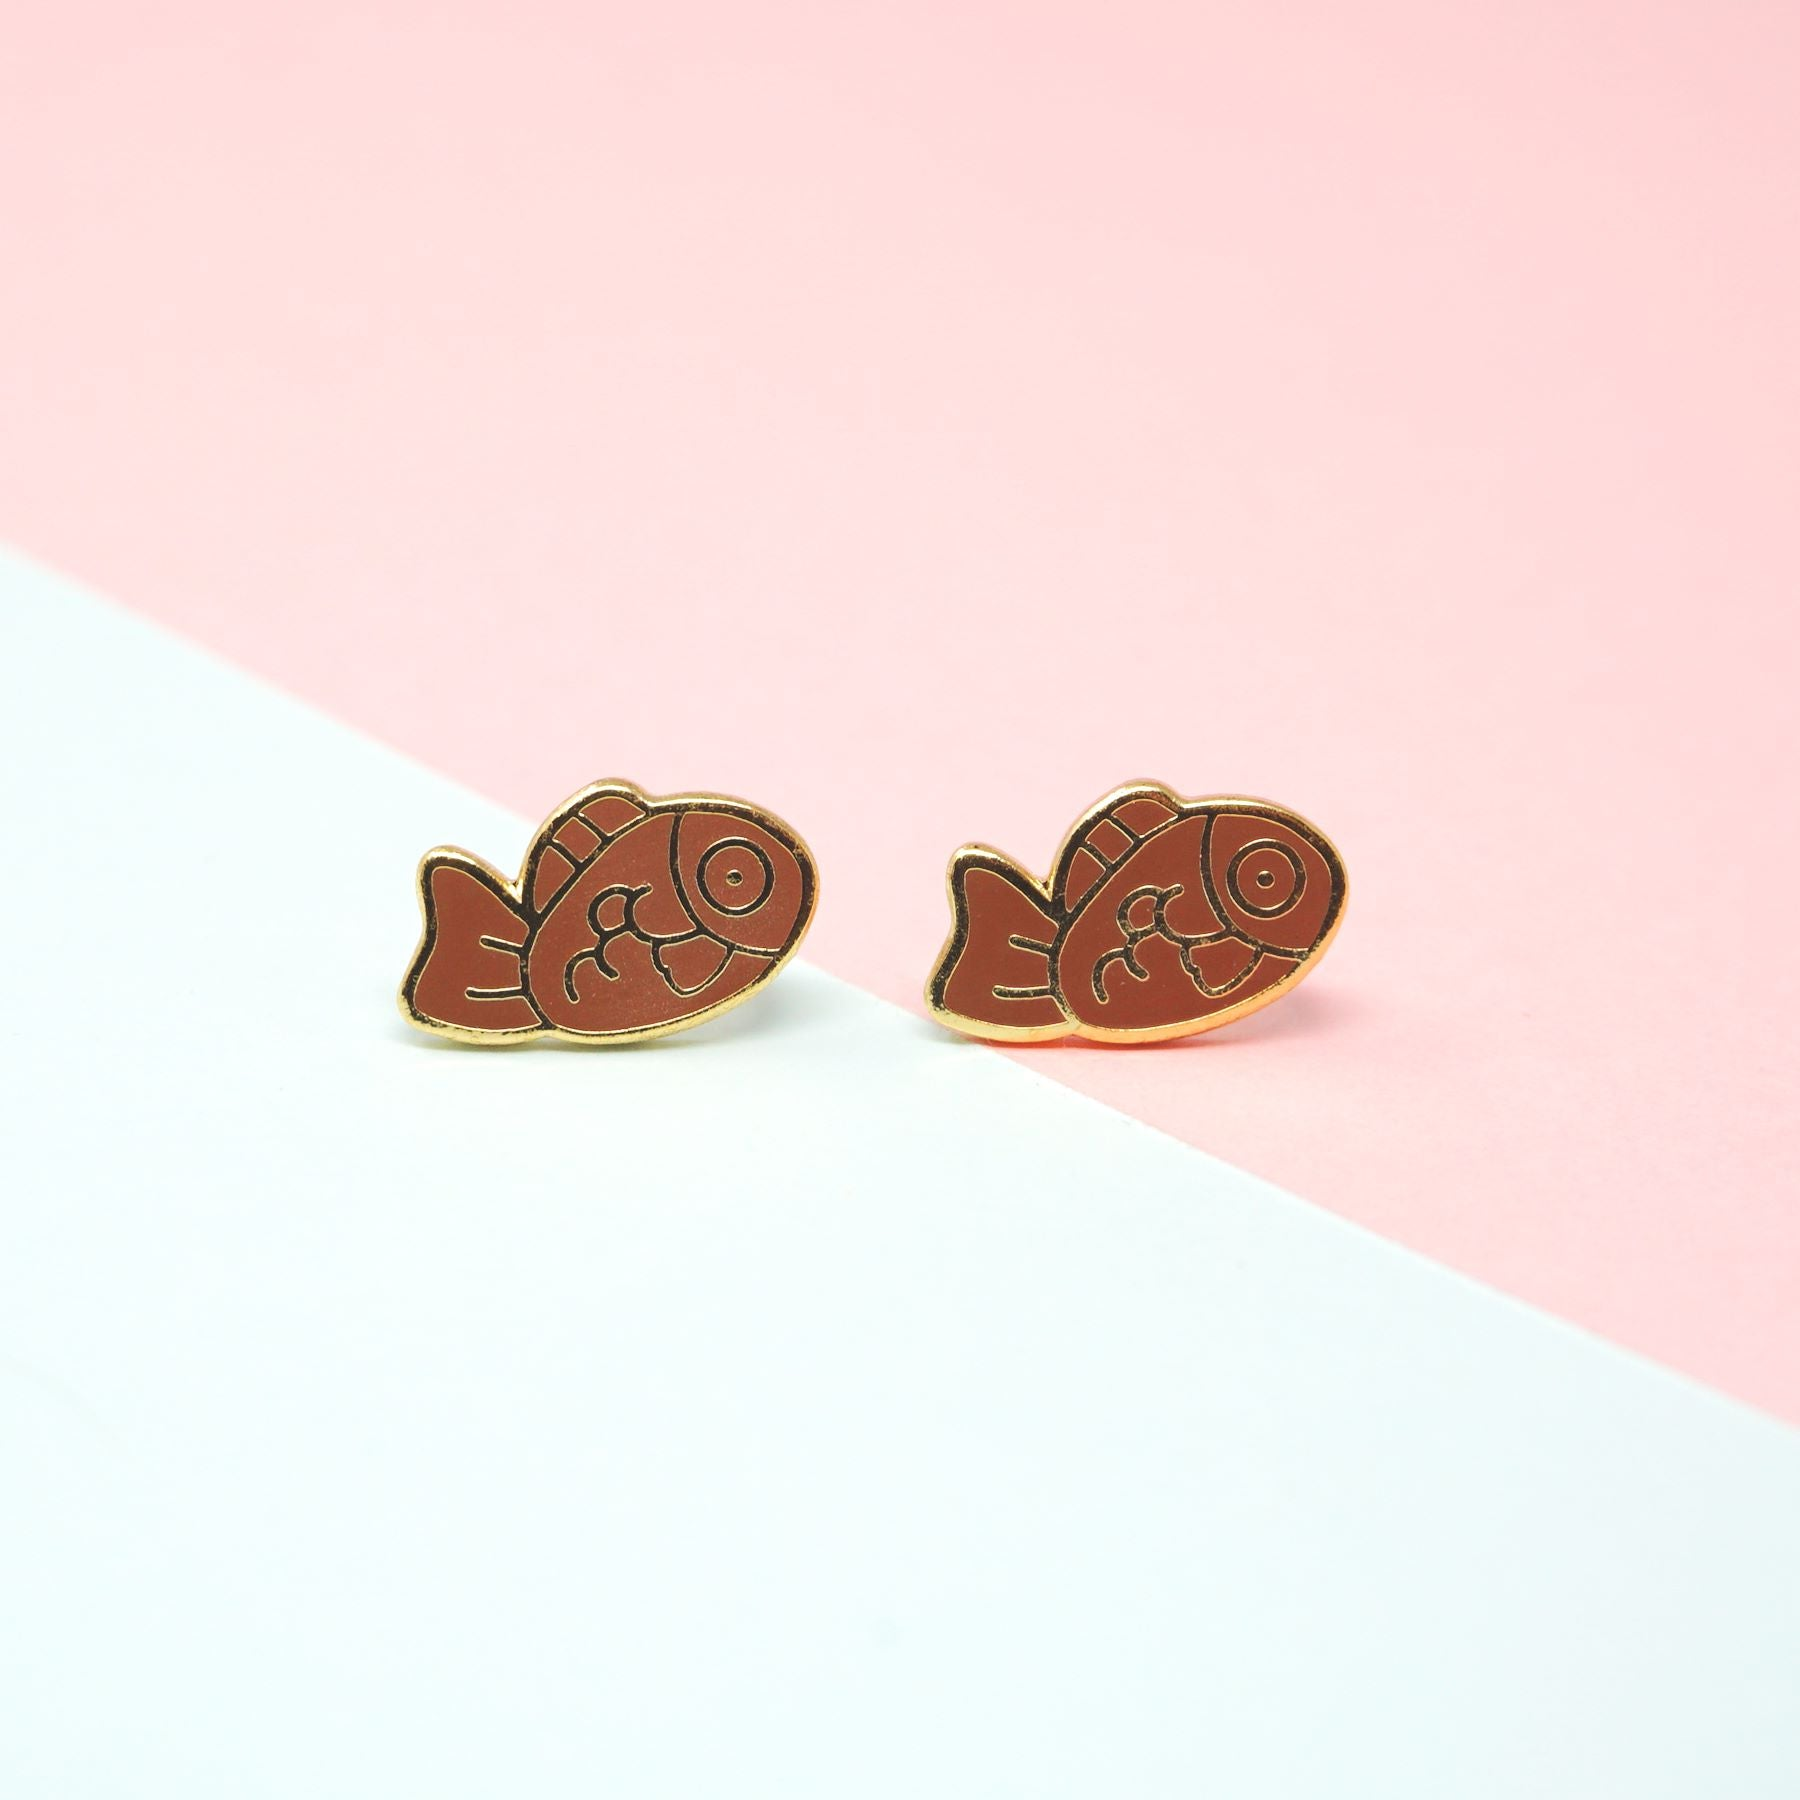 Miss Modi presents Handcrafted Taiyaki Enamel Stud Earrings